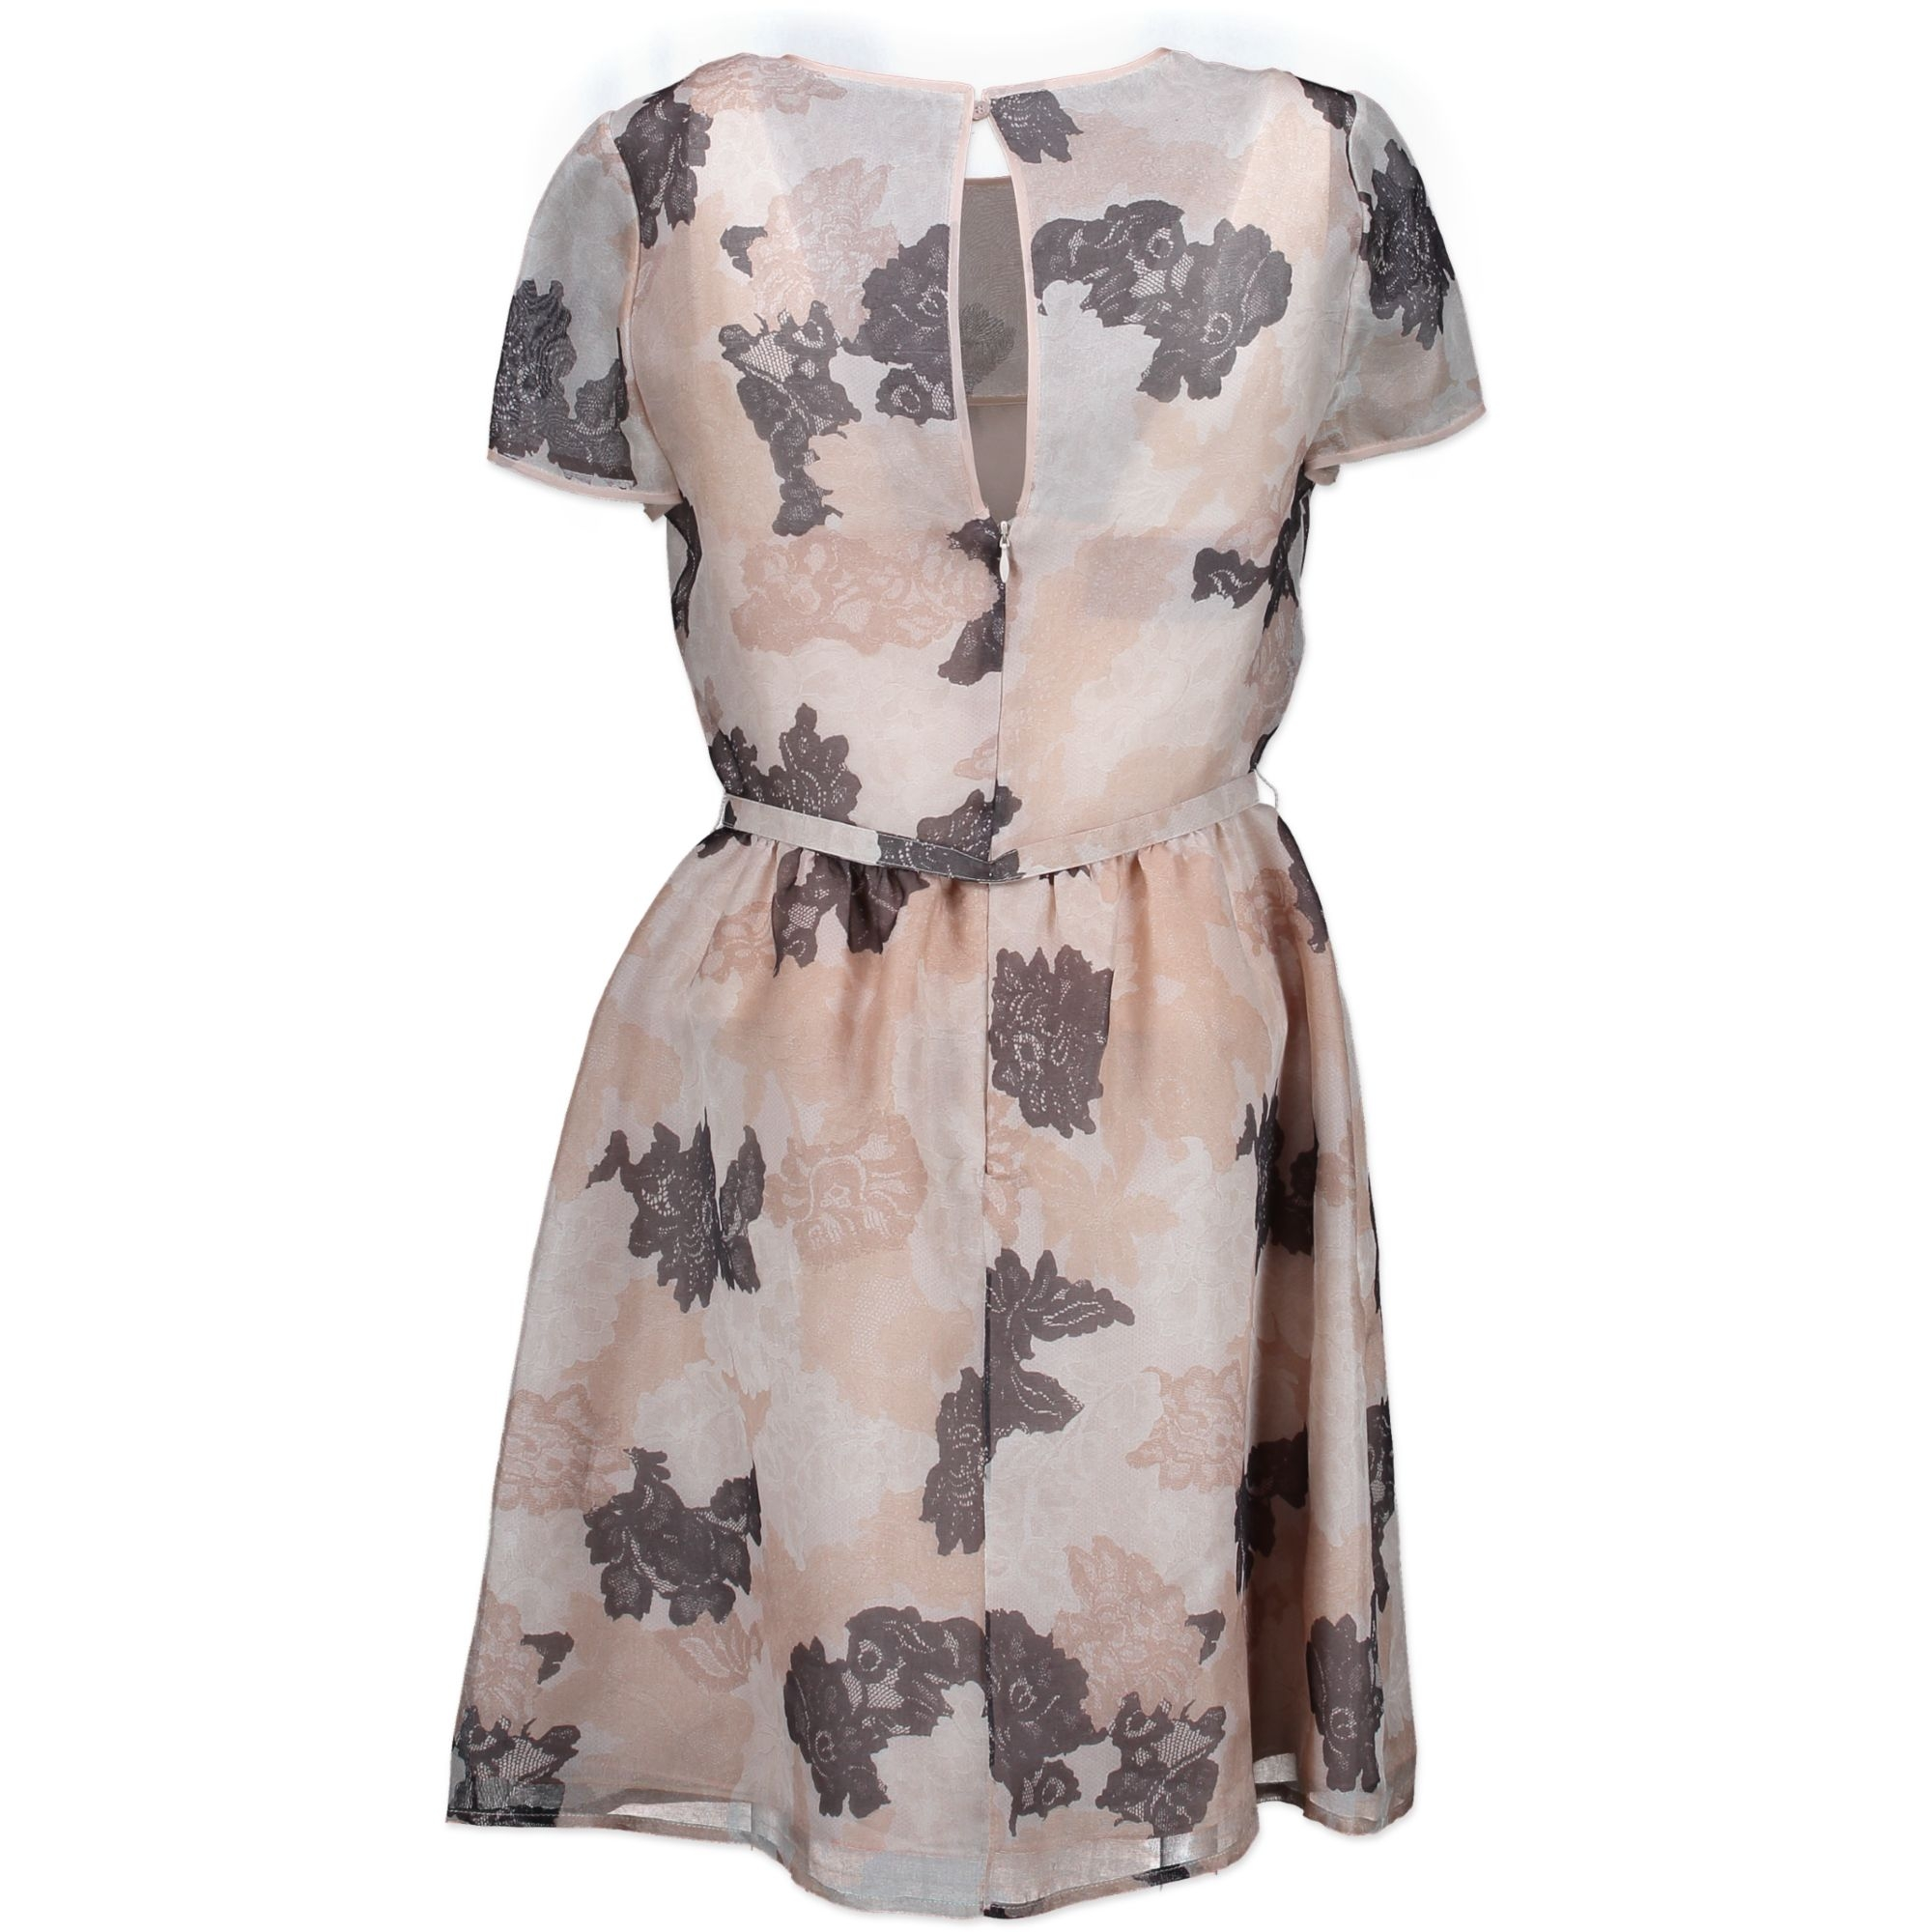 Buy authentic secondhand Valentino floral dress at Labellov vintage designer webshop at the right price safe and secure online shopping.